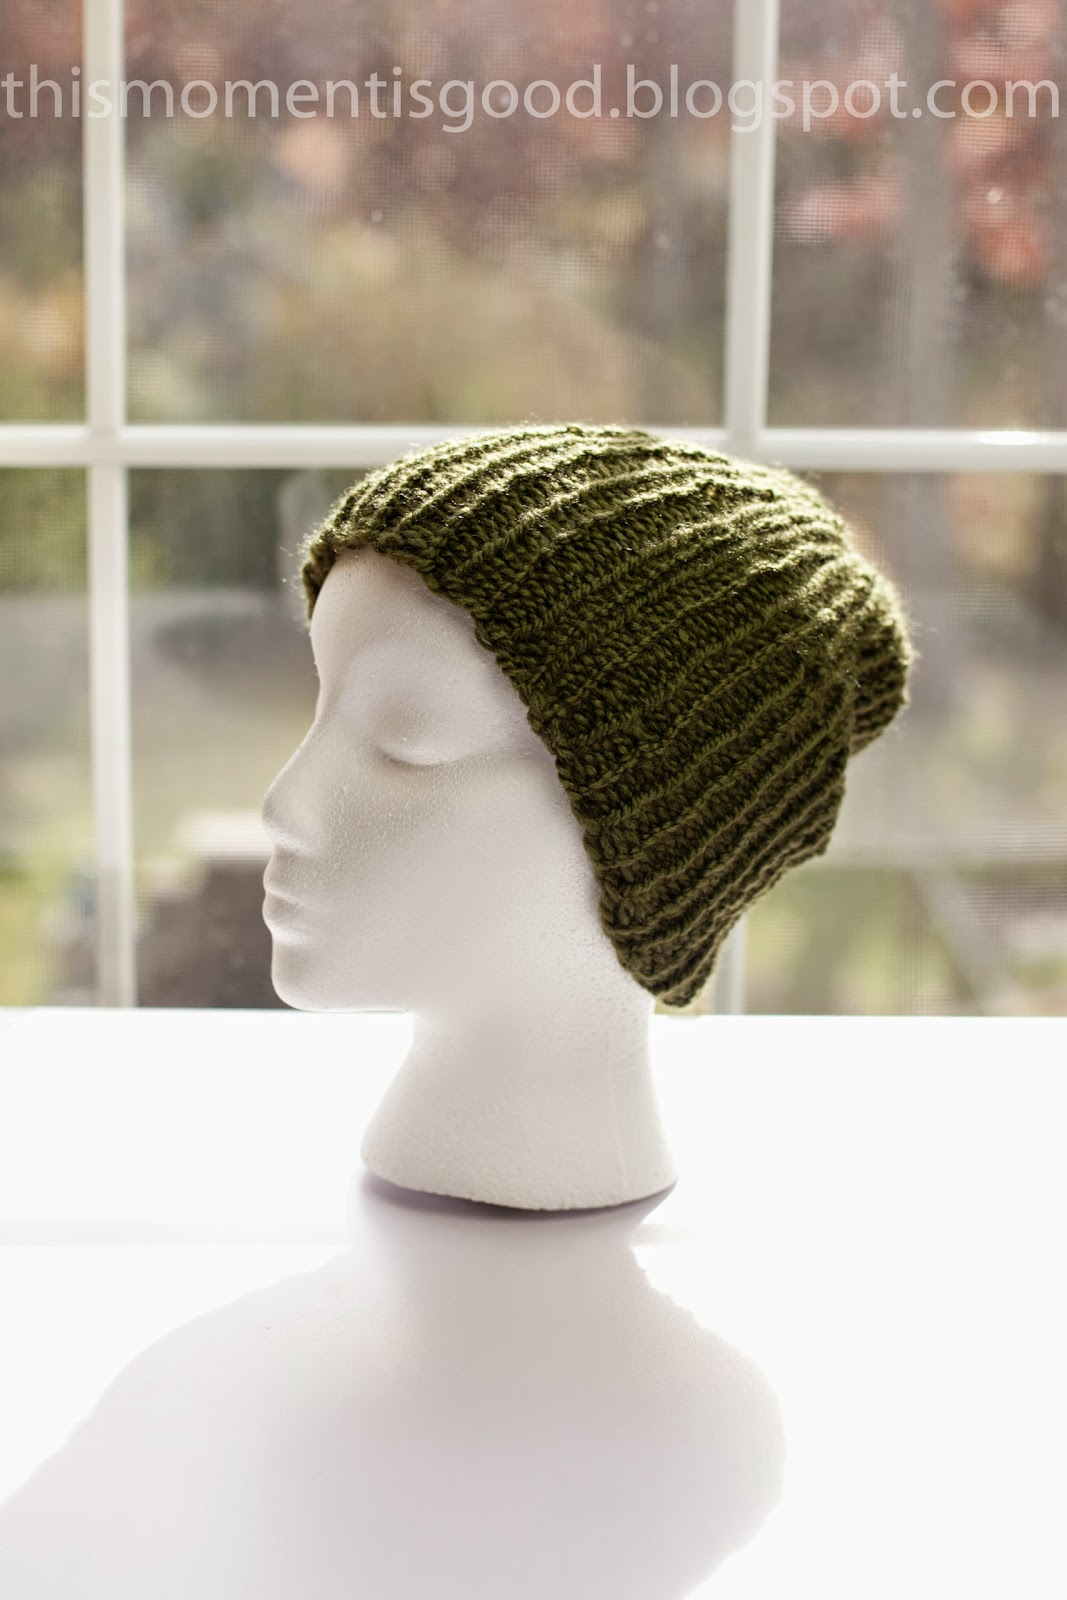 Loom Knitting by This Moment is Good!: LOOM KNIT MENS RIBBED BEANIE...